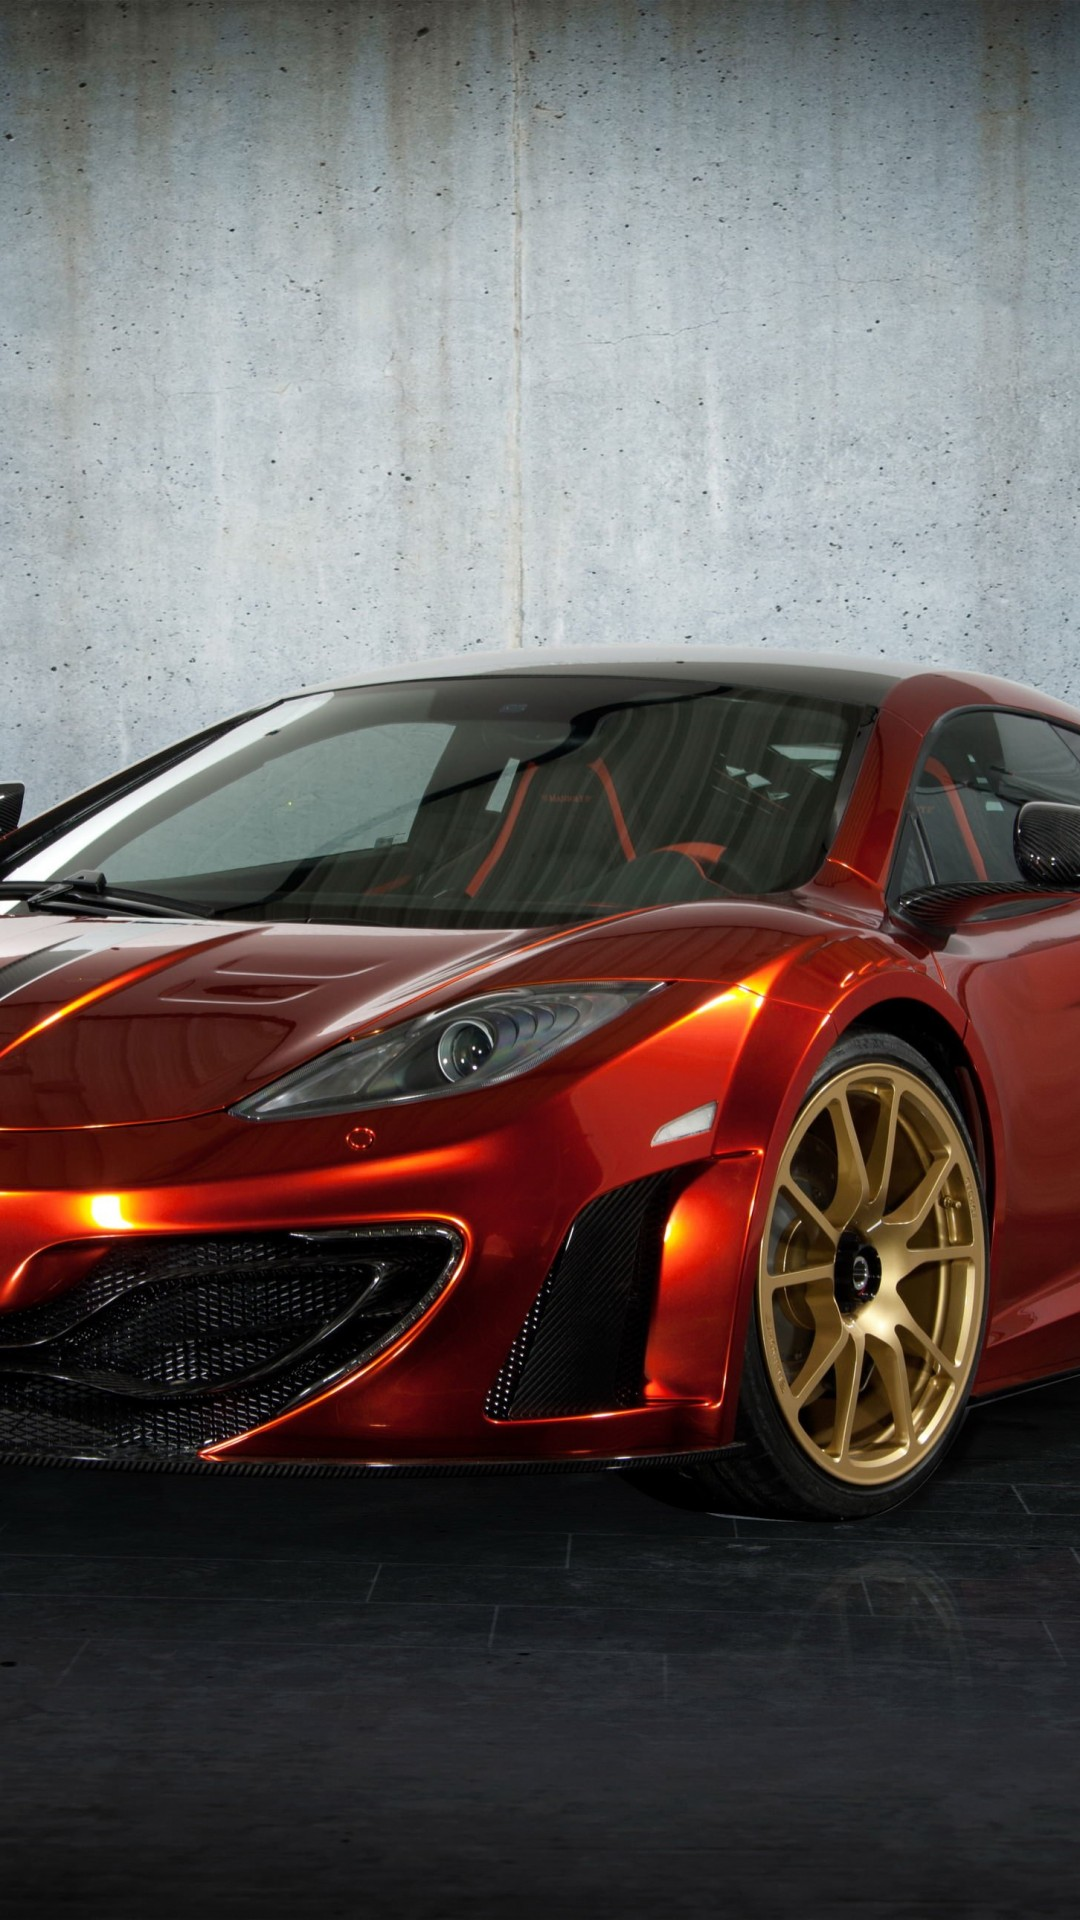 McLaren MP4-12Cf By Mansory Wallpaper for SONY Xperia Z1